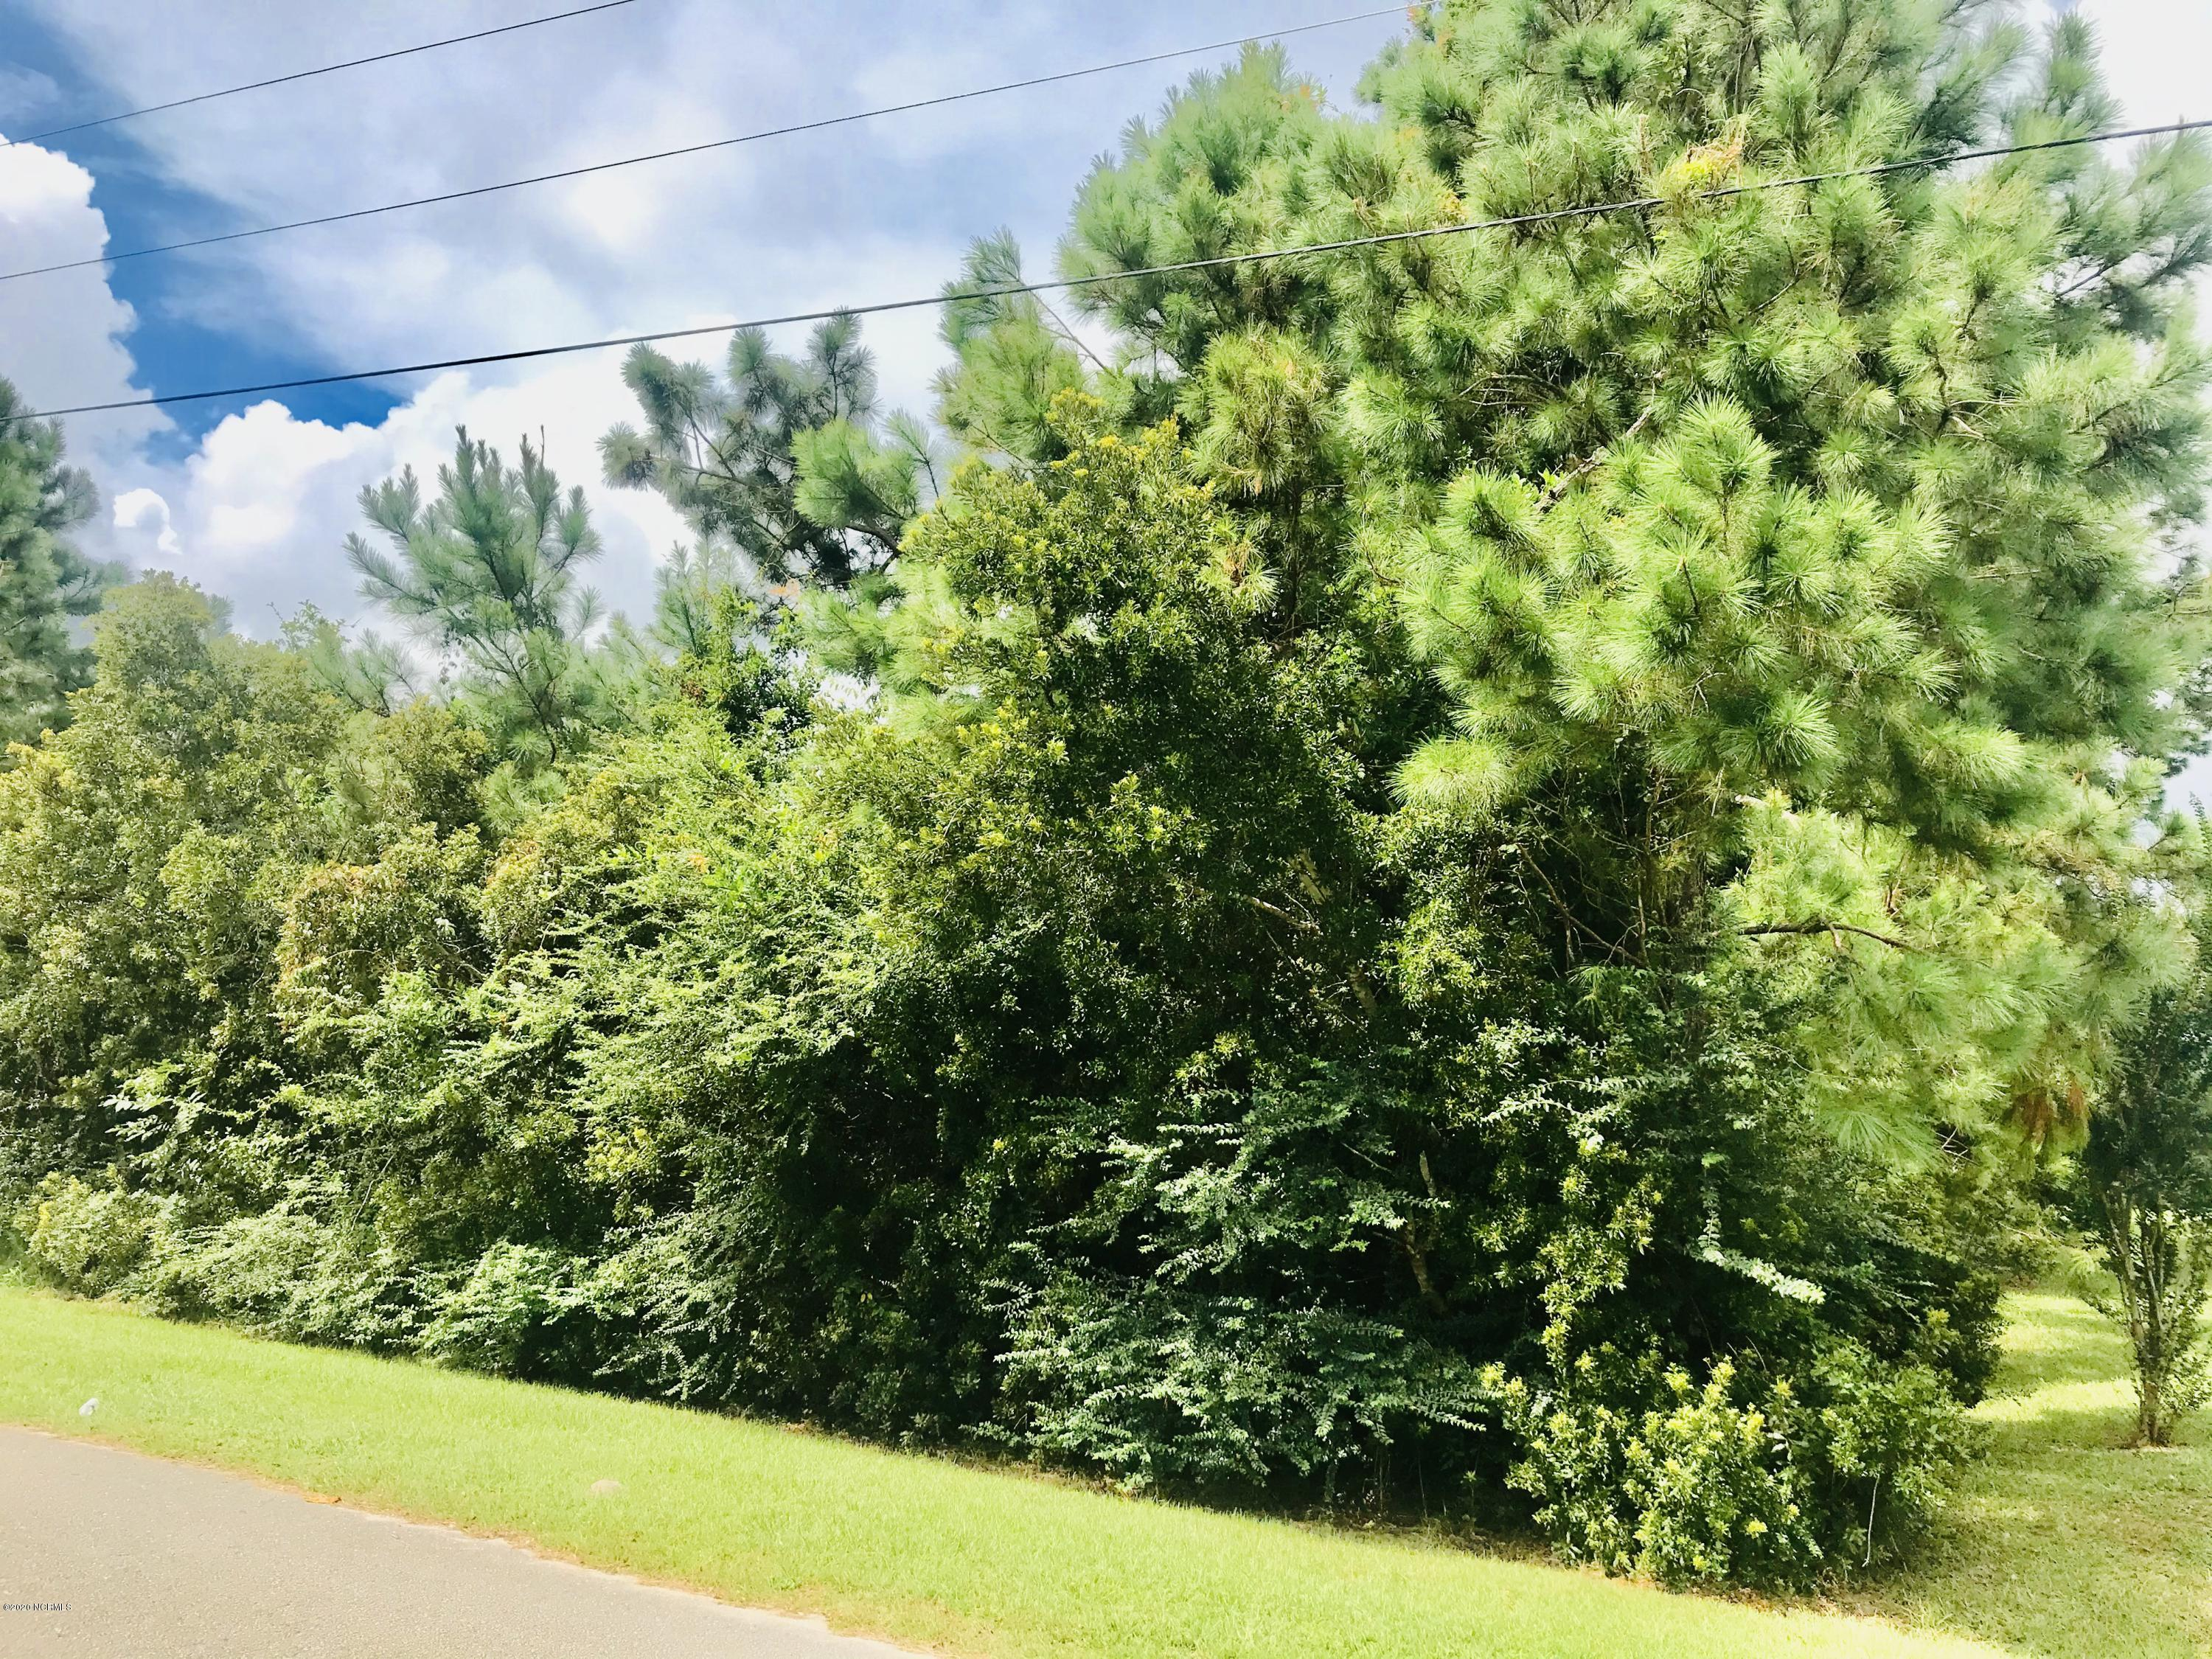 Located minutes from Stone Bay, MCAS and Camp Lejeune, North Topsail Beach, North Shore Country Club, restaurants, entertainment and more.... Whether your just starting the home building process or perhaps looking to build a second home or investment property, this lot is perfect for new construction!!